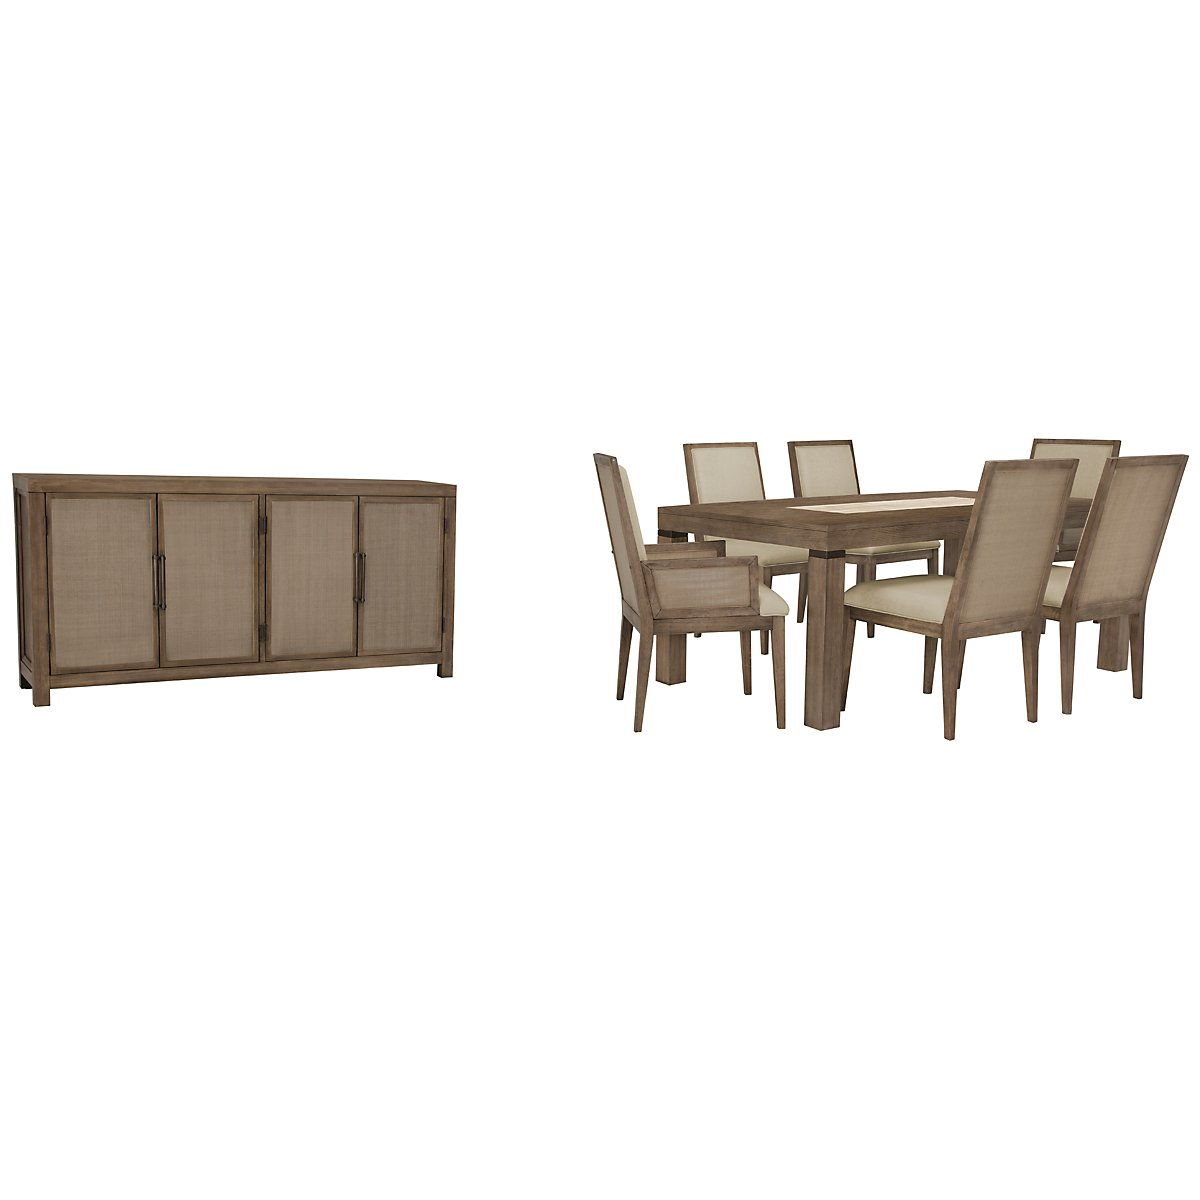 Mirabelle Light Tone Upholstered Rect Dining Room